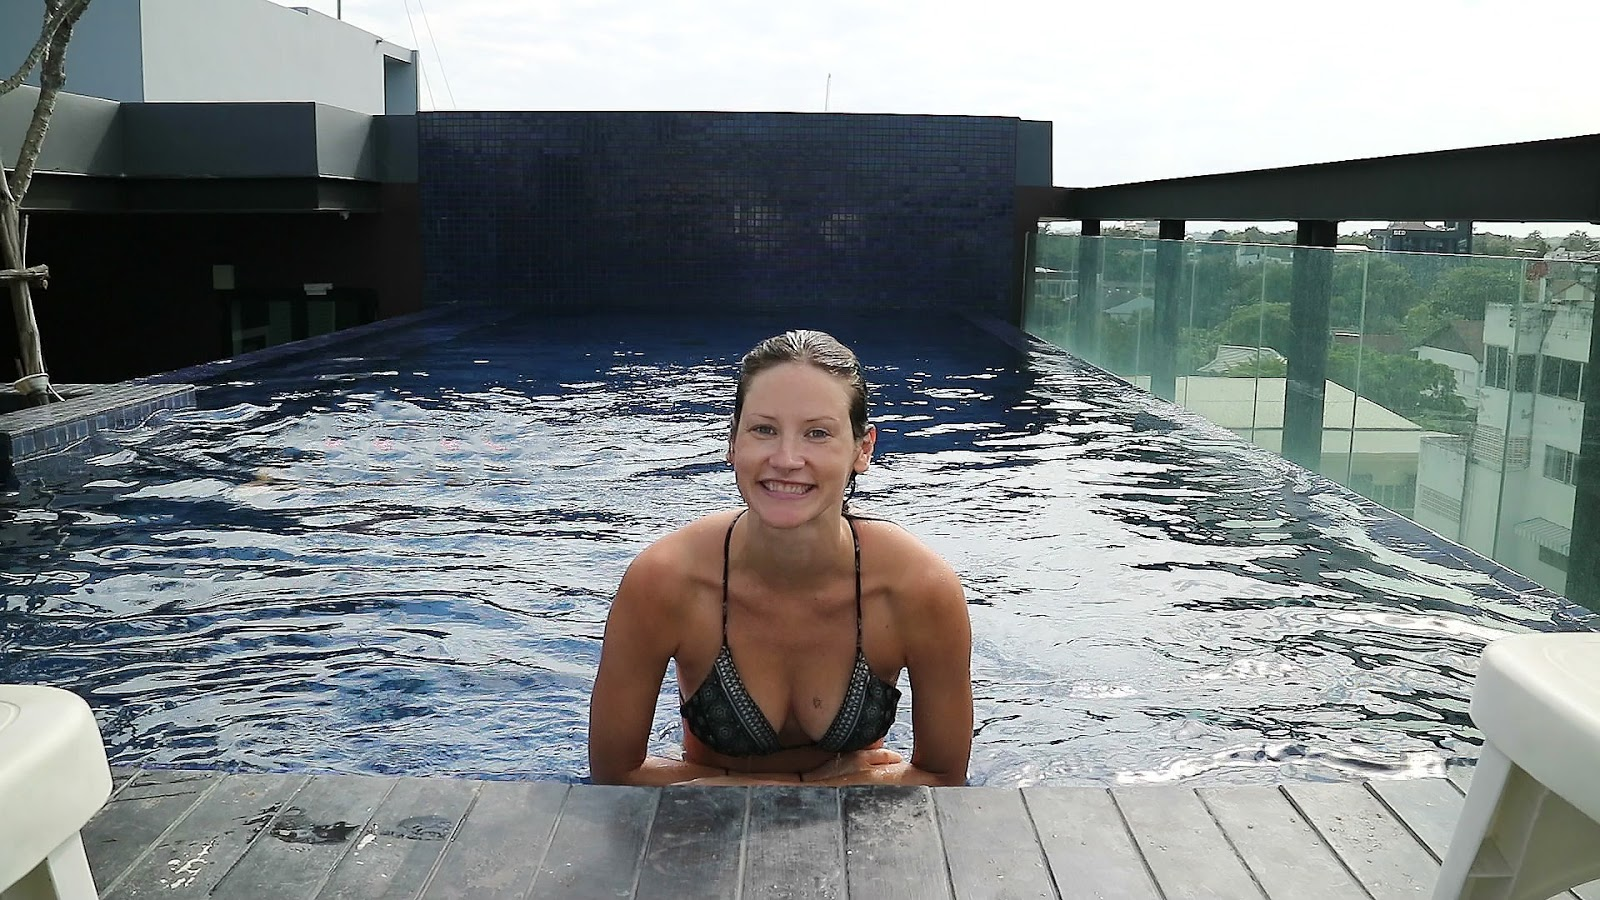 fashion and travel blogger, Alison Hutchinson, swimming in her rooftop pool